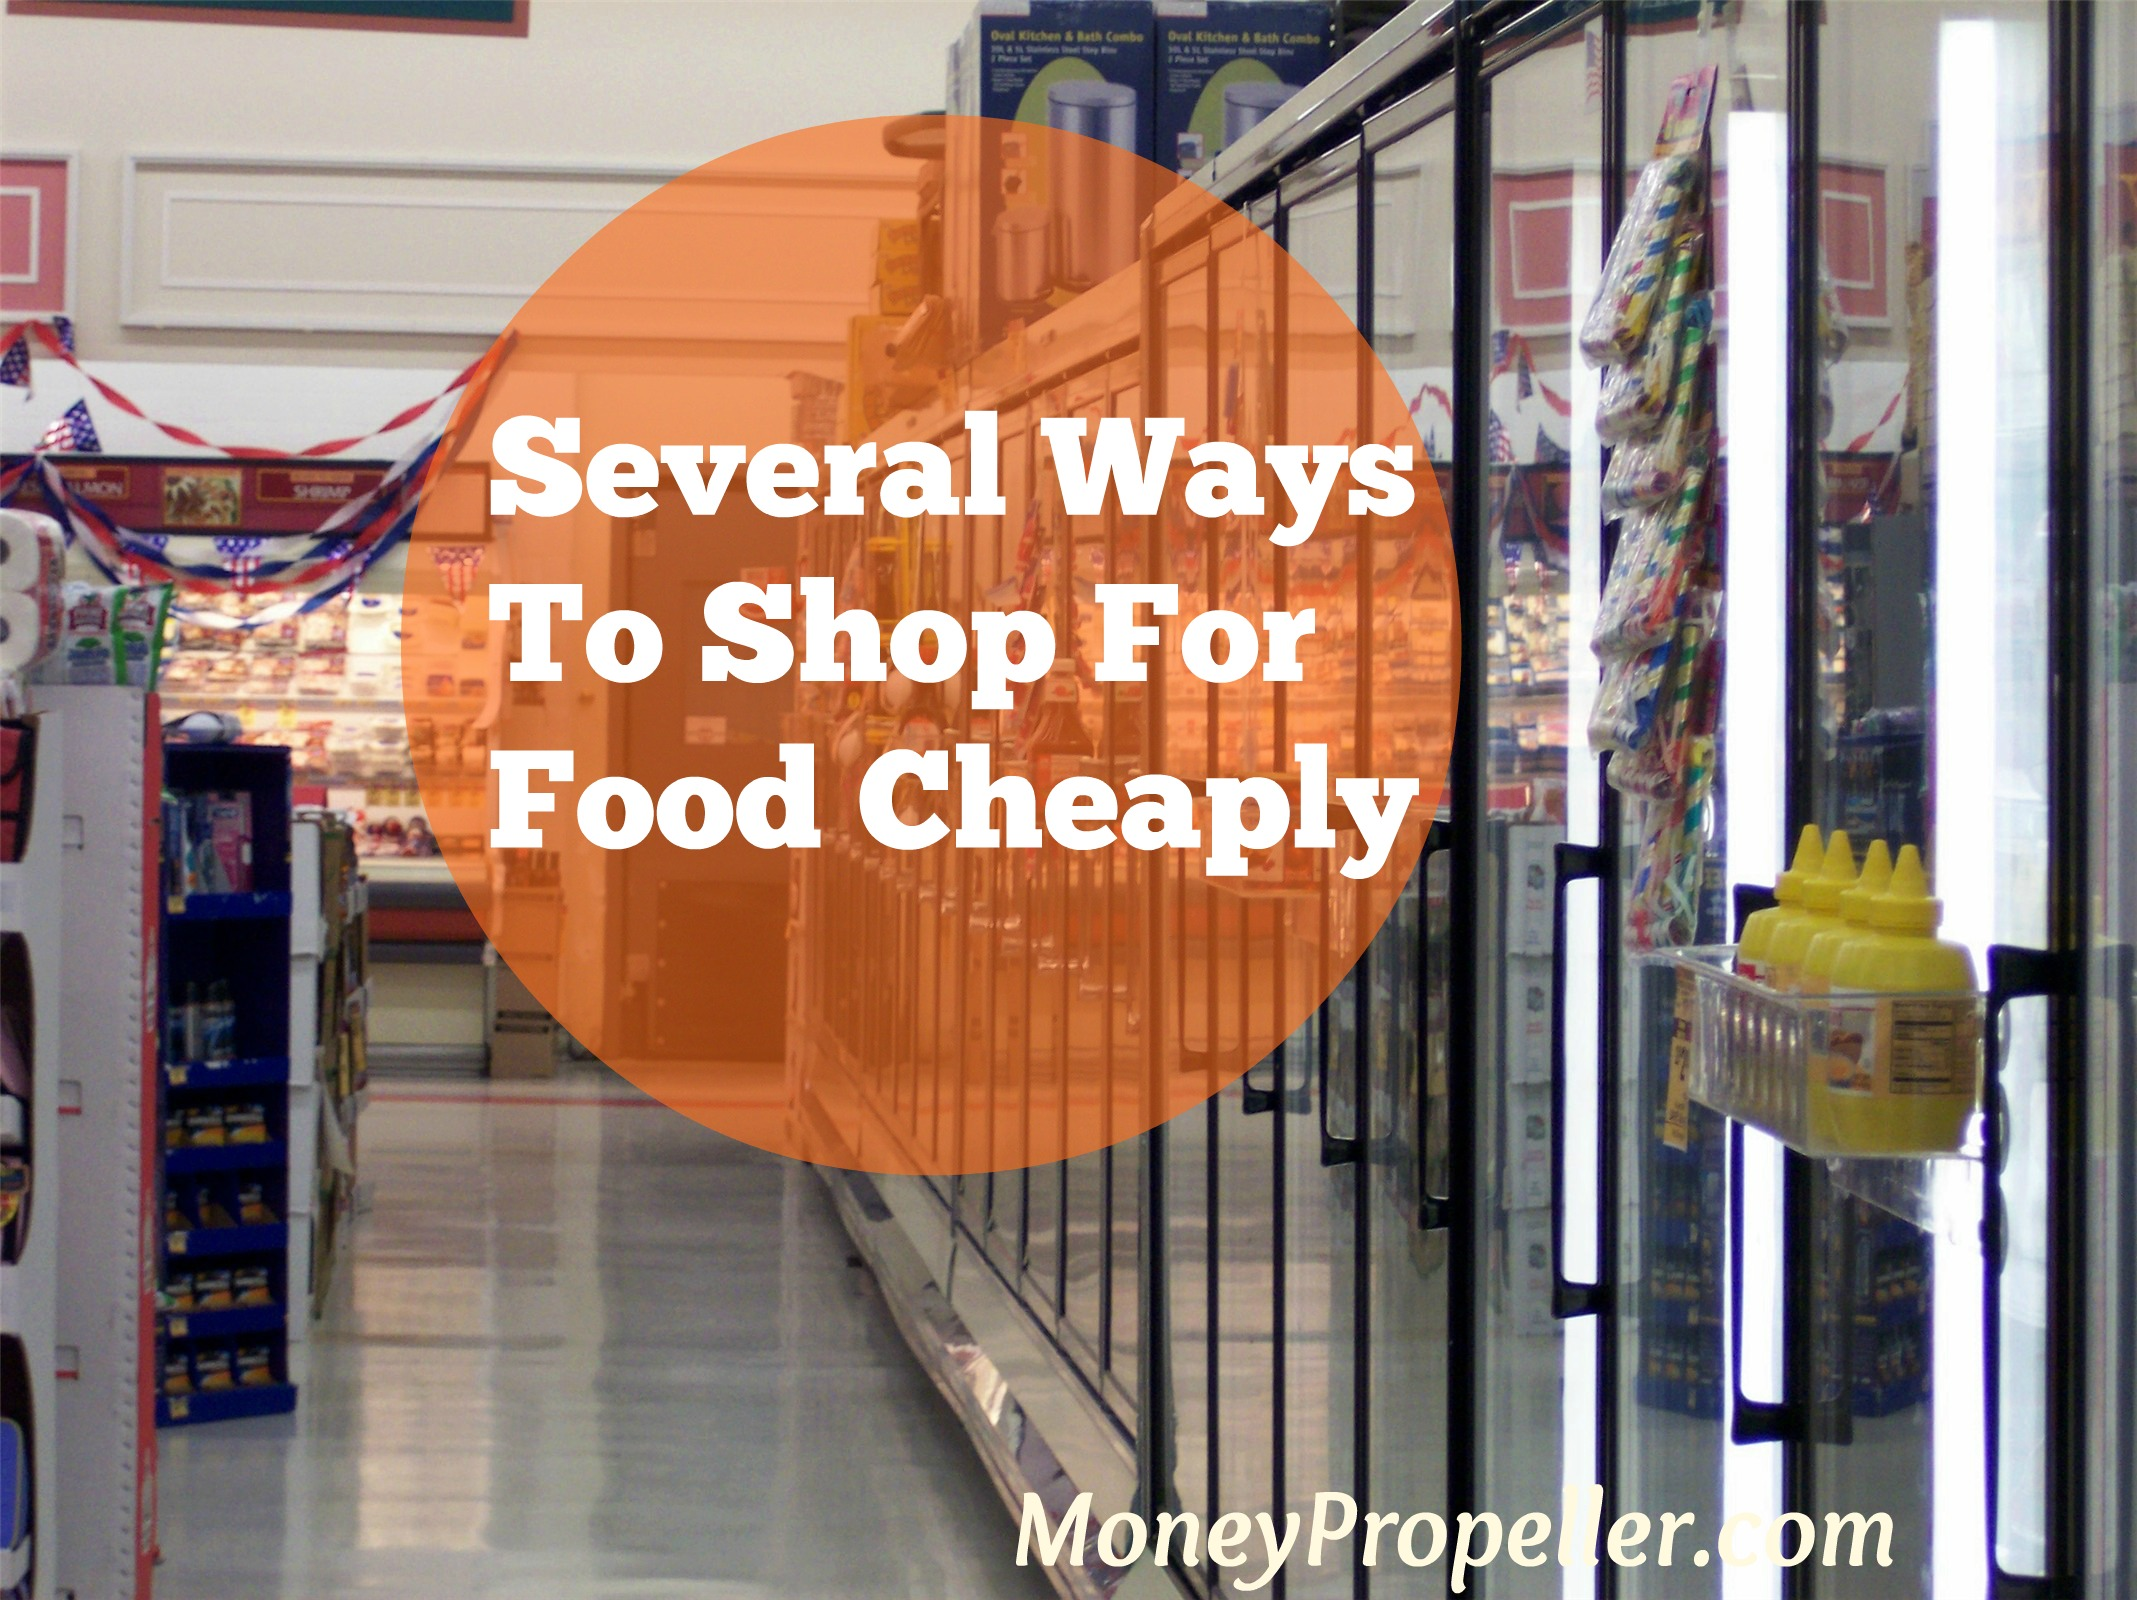 Here are some ways to shop for food cheaply